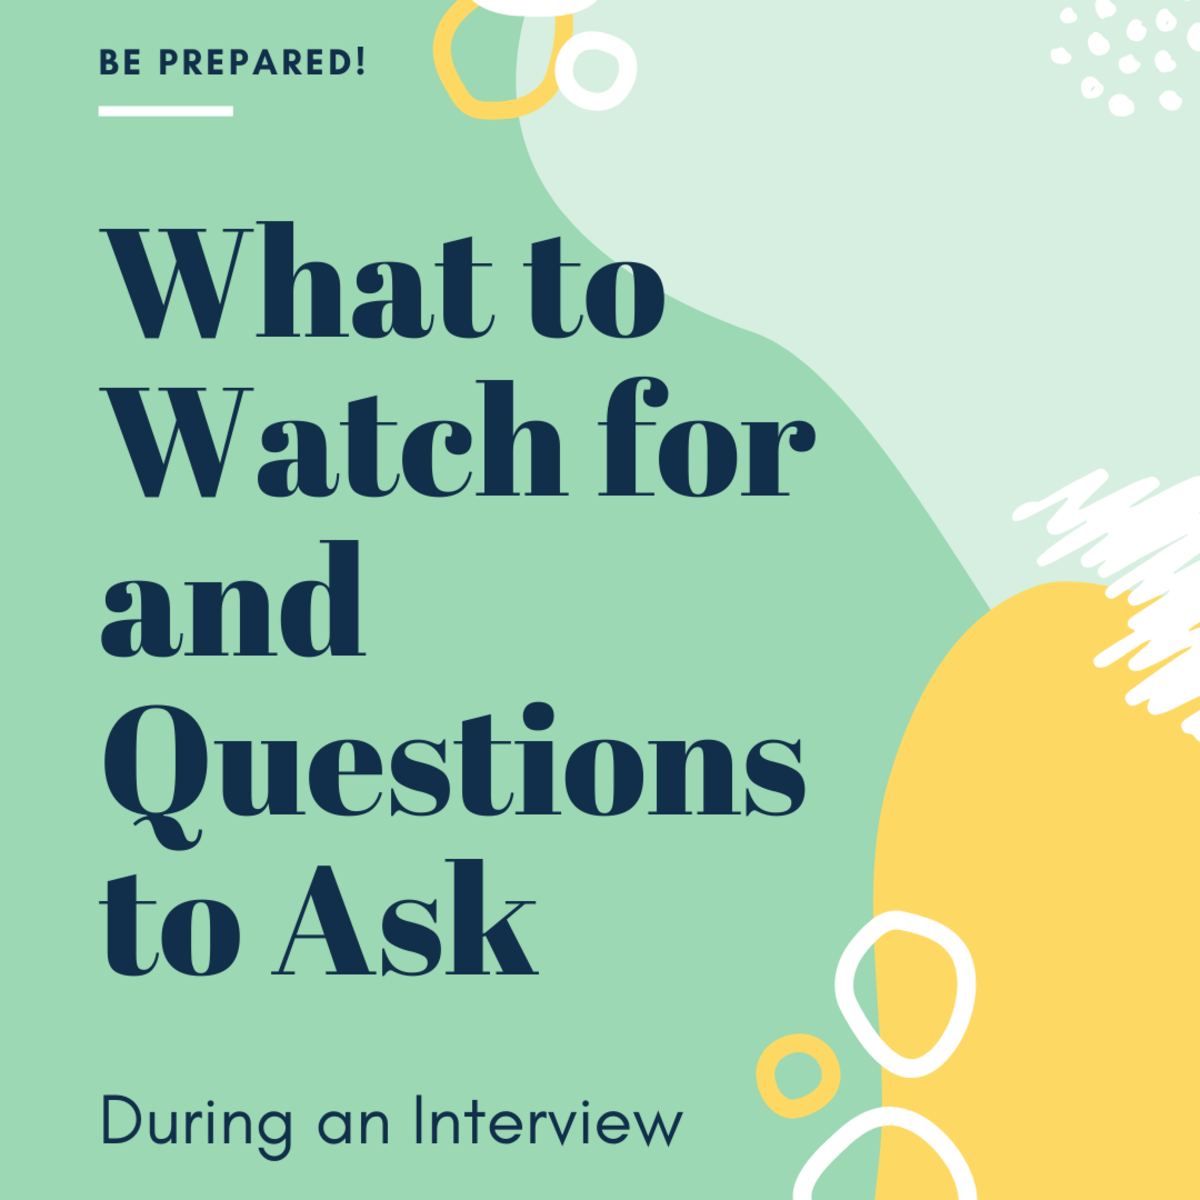 Here are some things to consider and questions to ask during an interview.